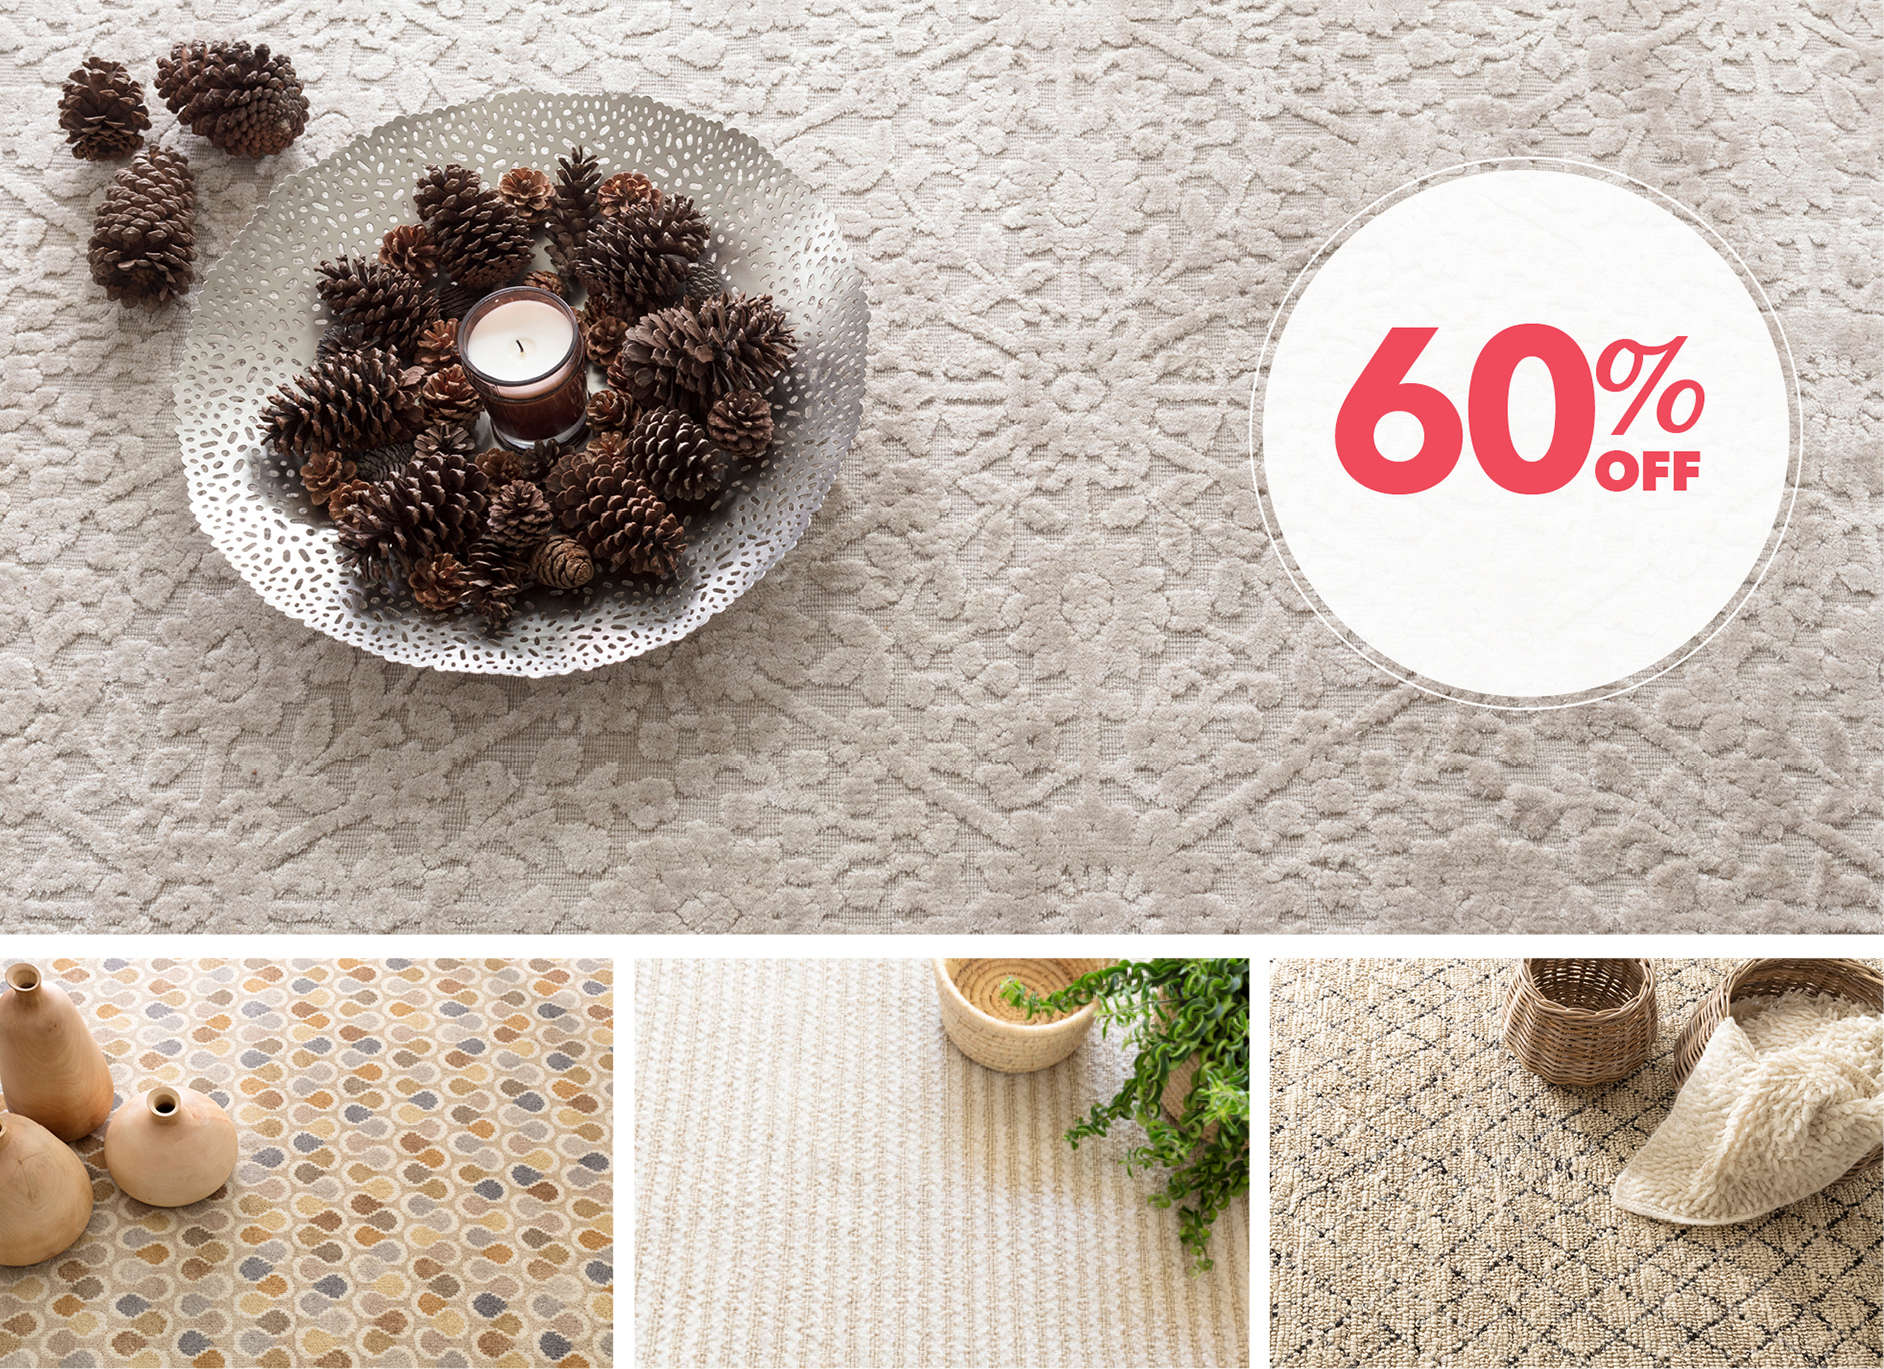 Up to 60% Off Rugs